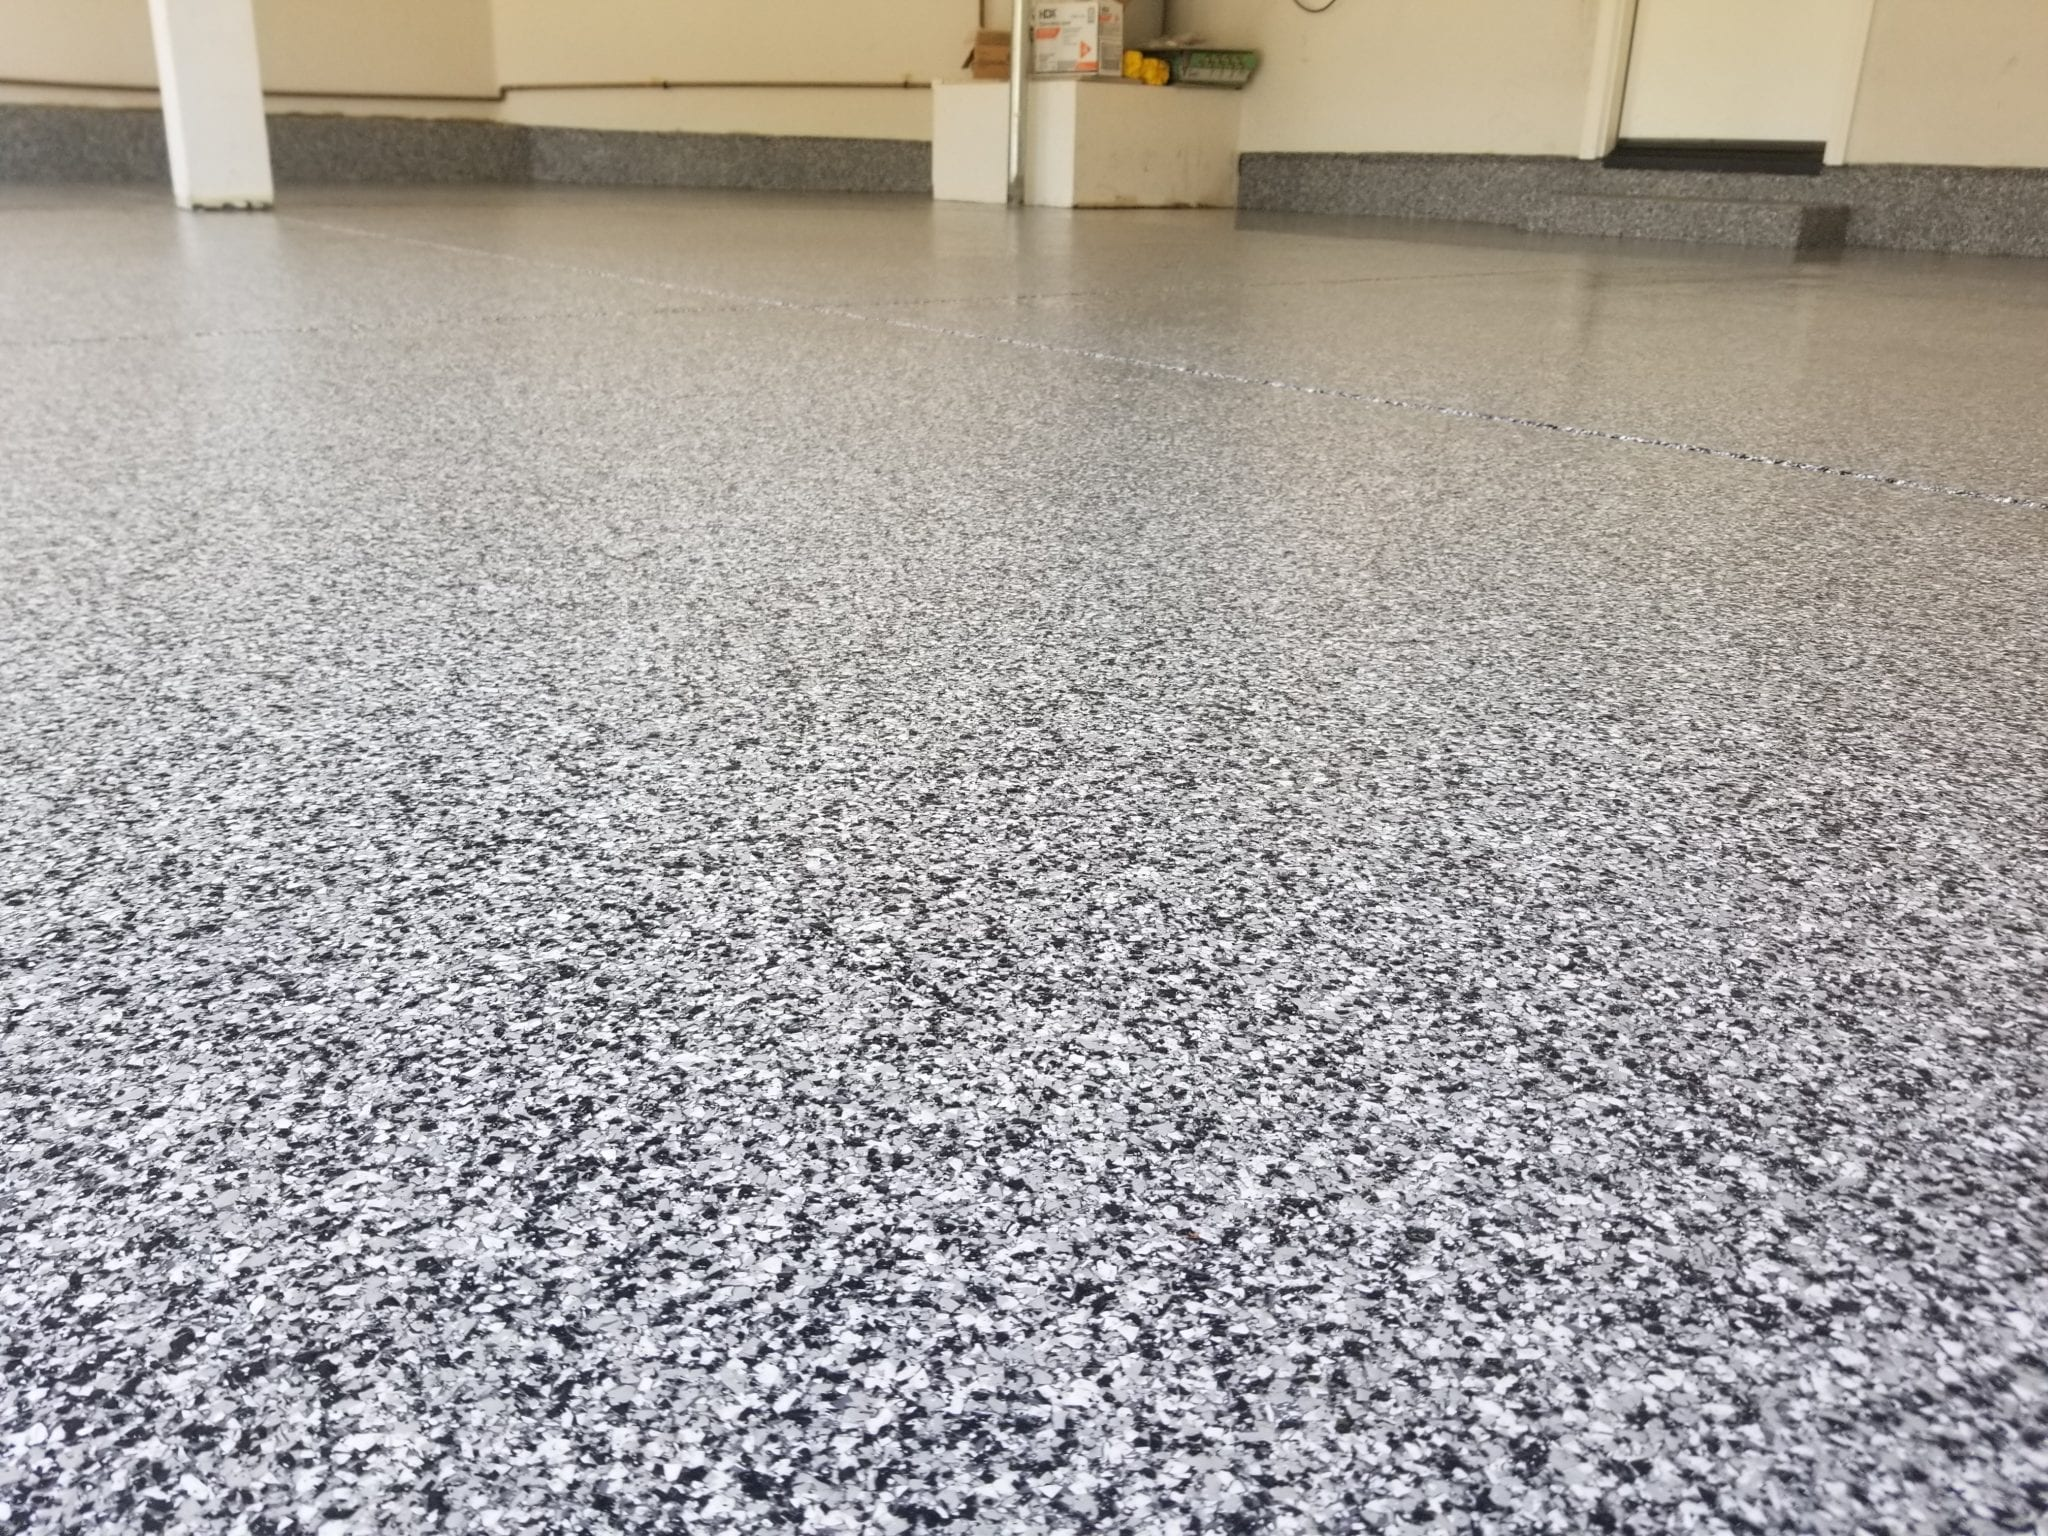 Epoxy Flooring Contractors In Palmdale Ca Epoxy La